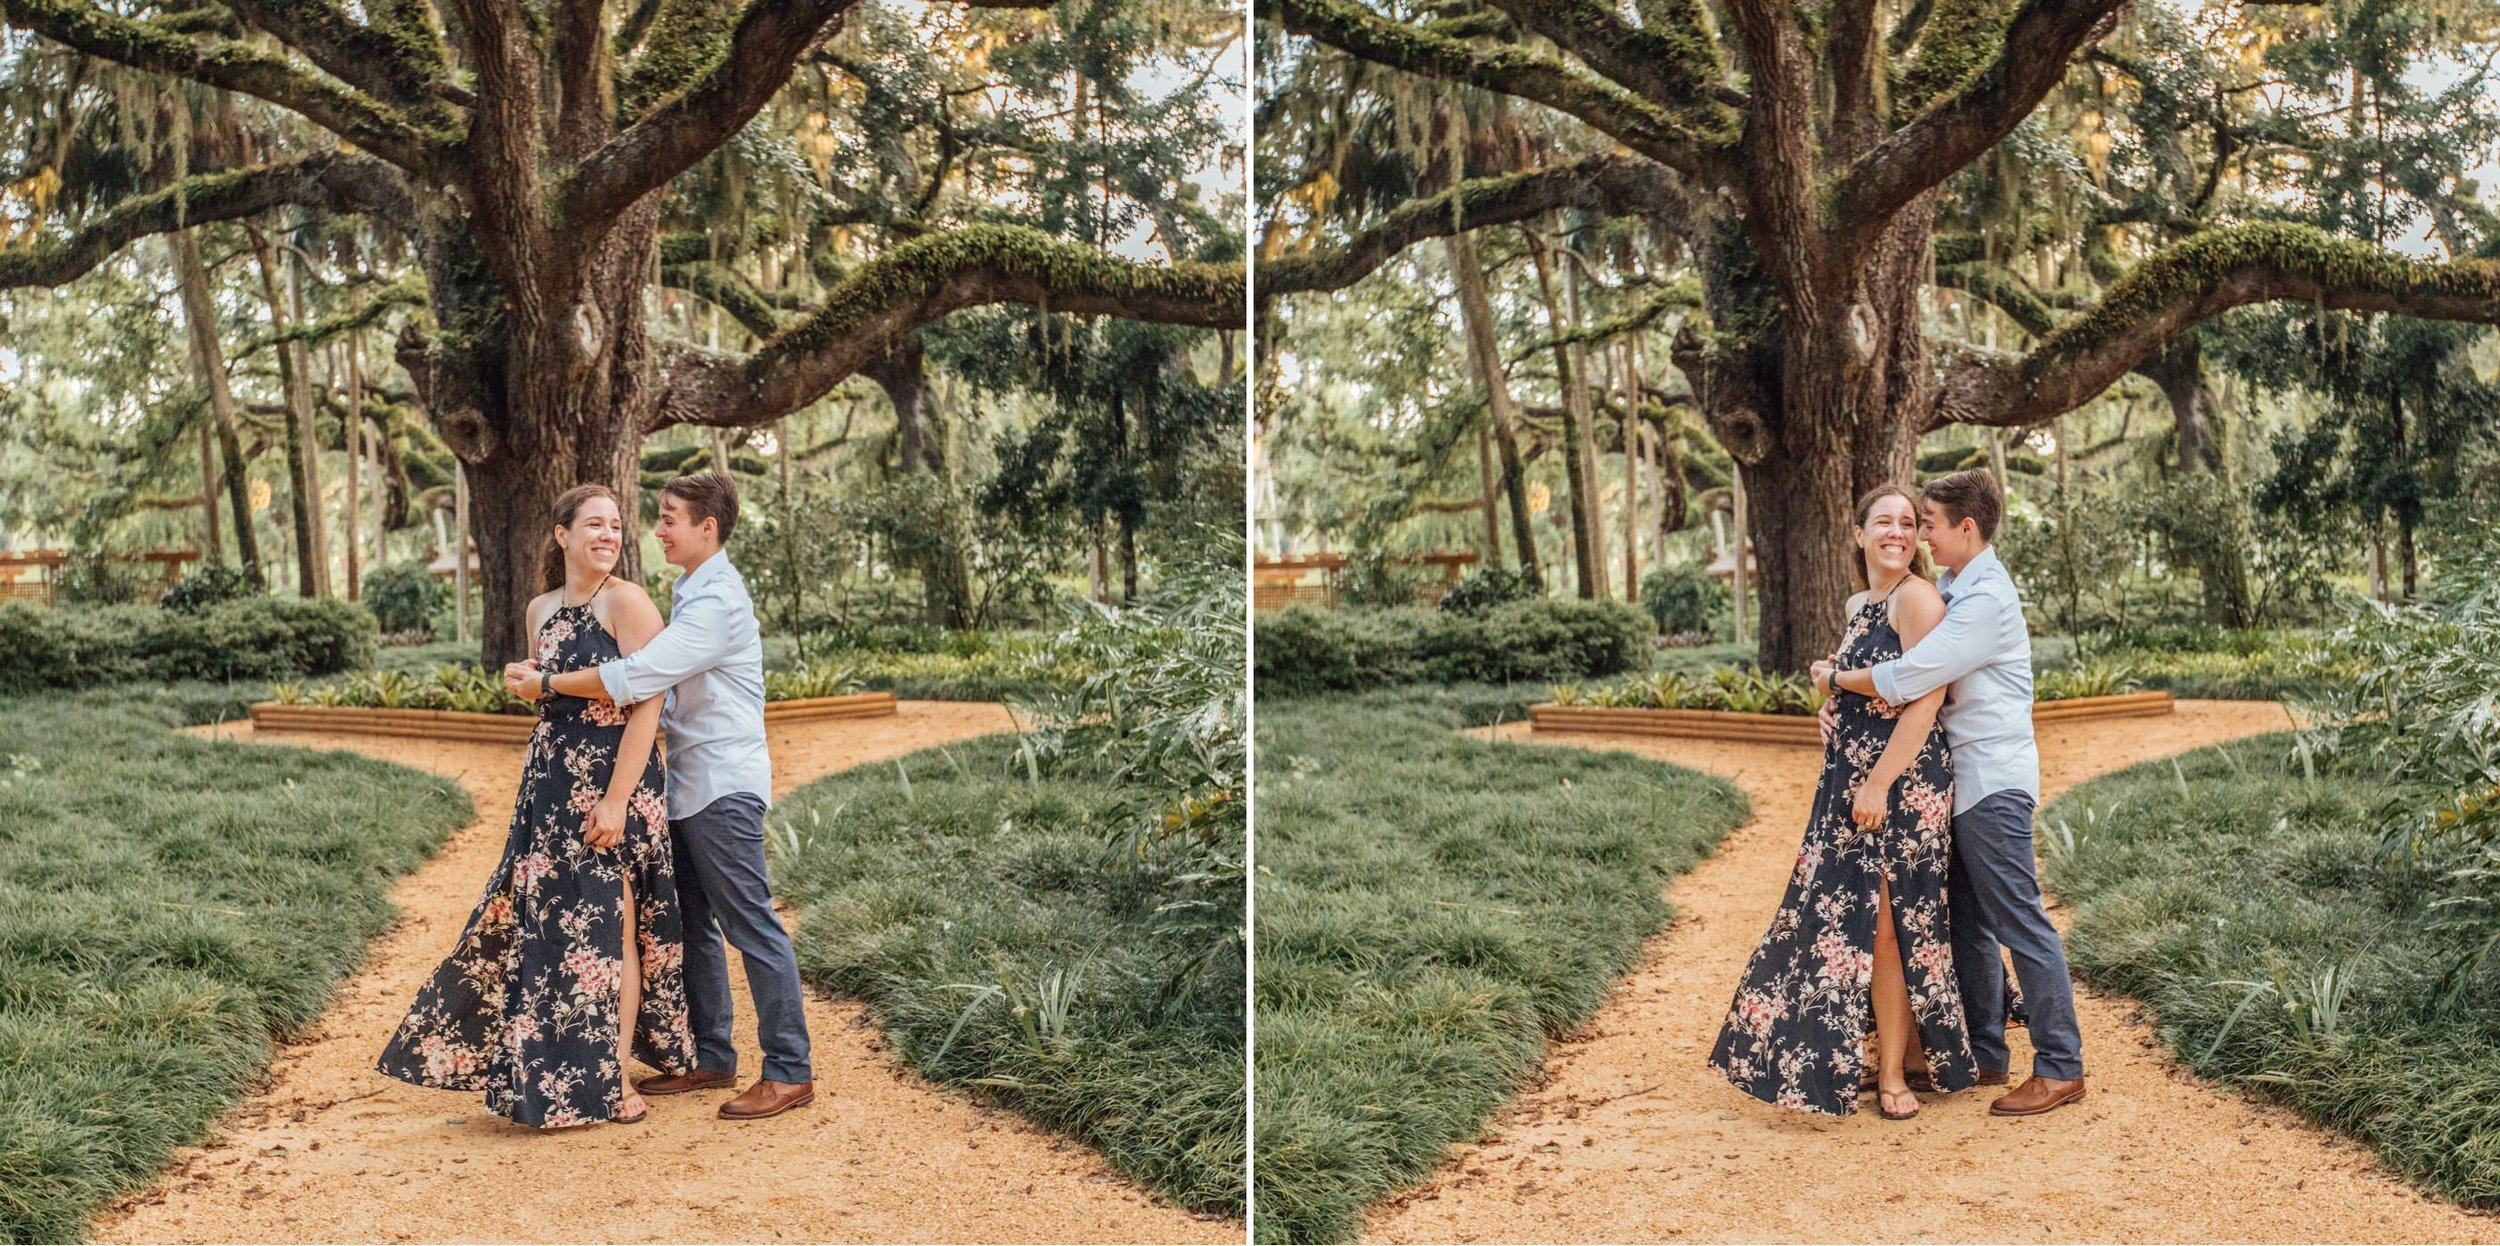 Orlando Natural Forest State Park Engagement Photos- Romantic LGBT Engaged Couples photos11.jpg